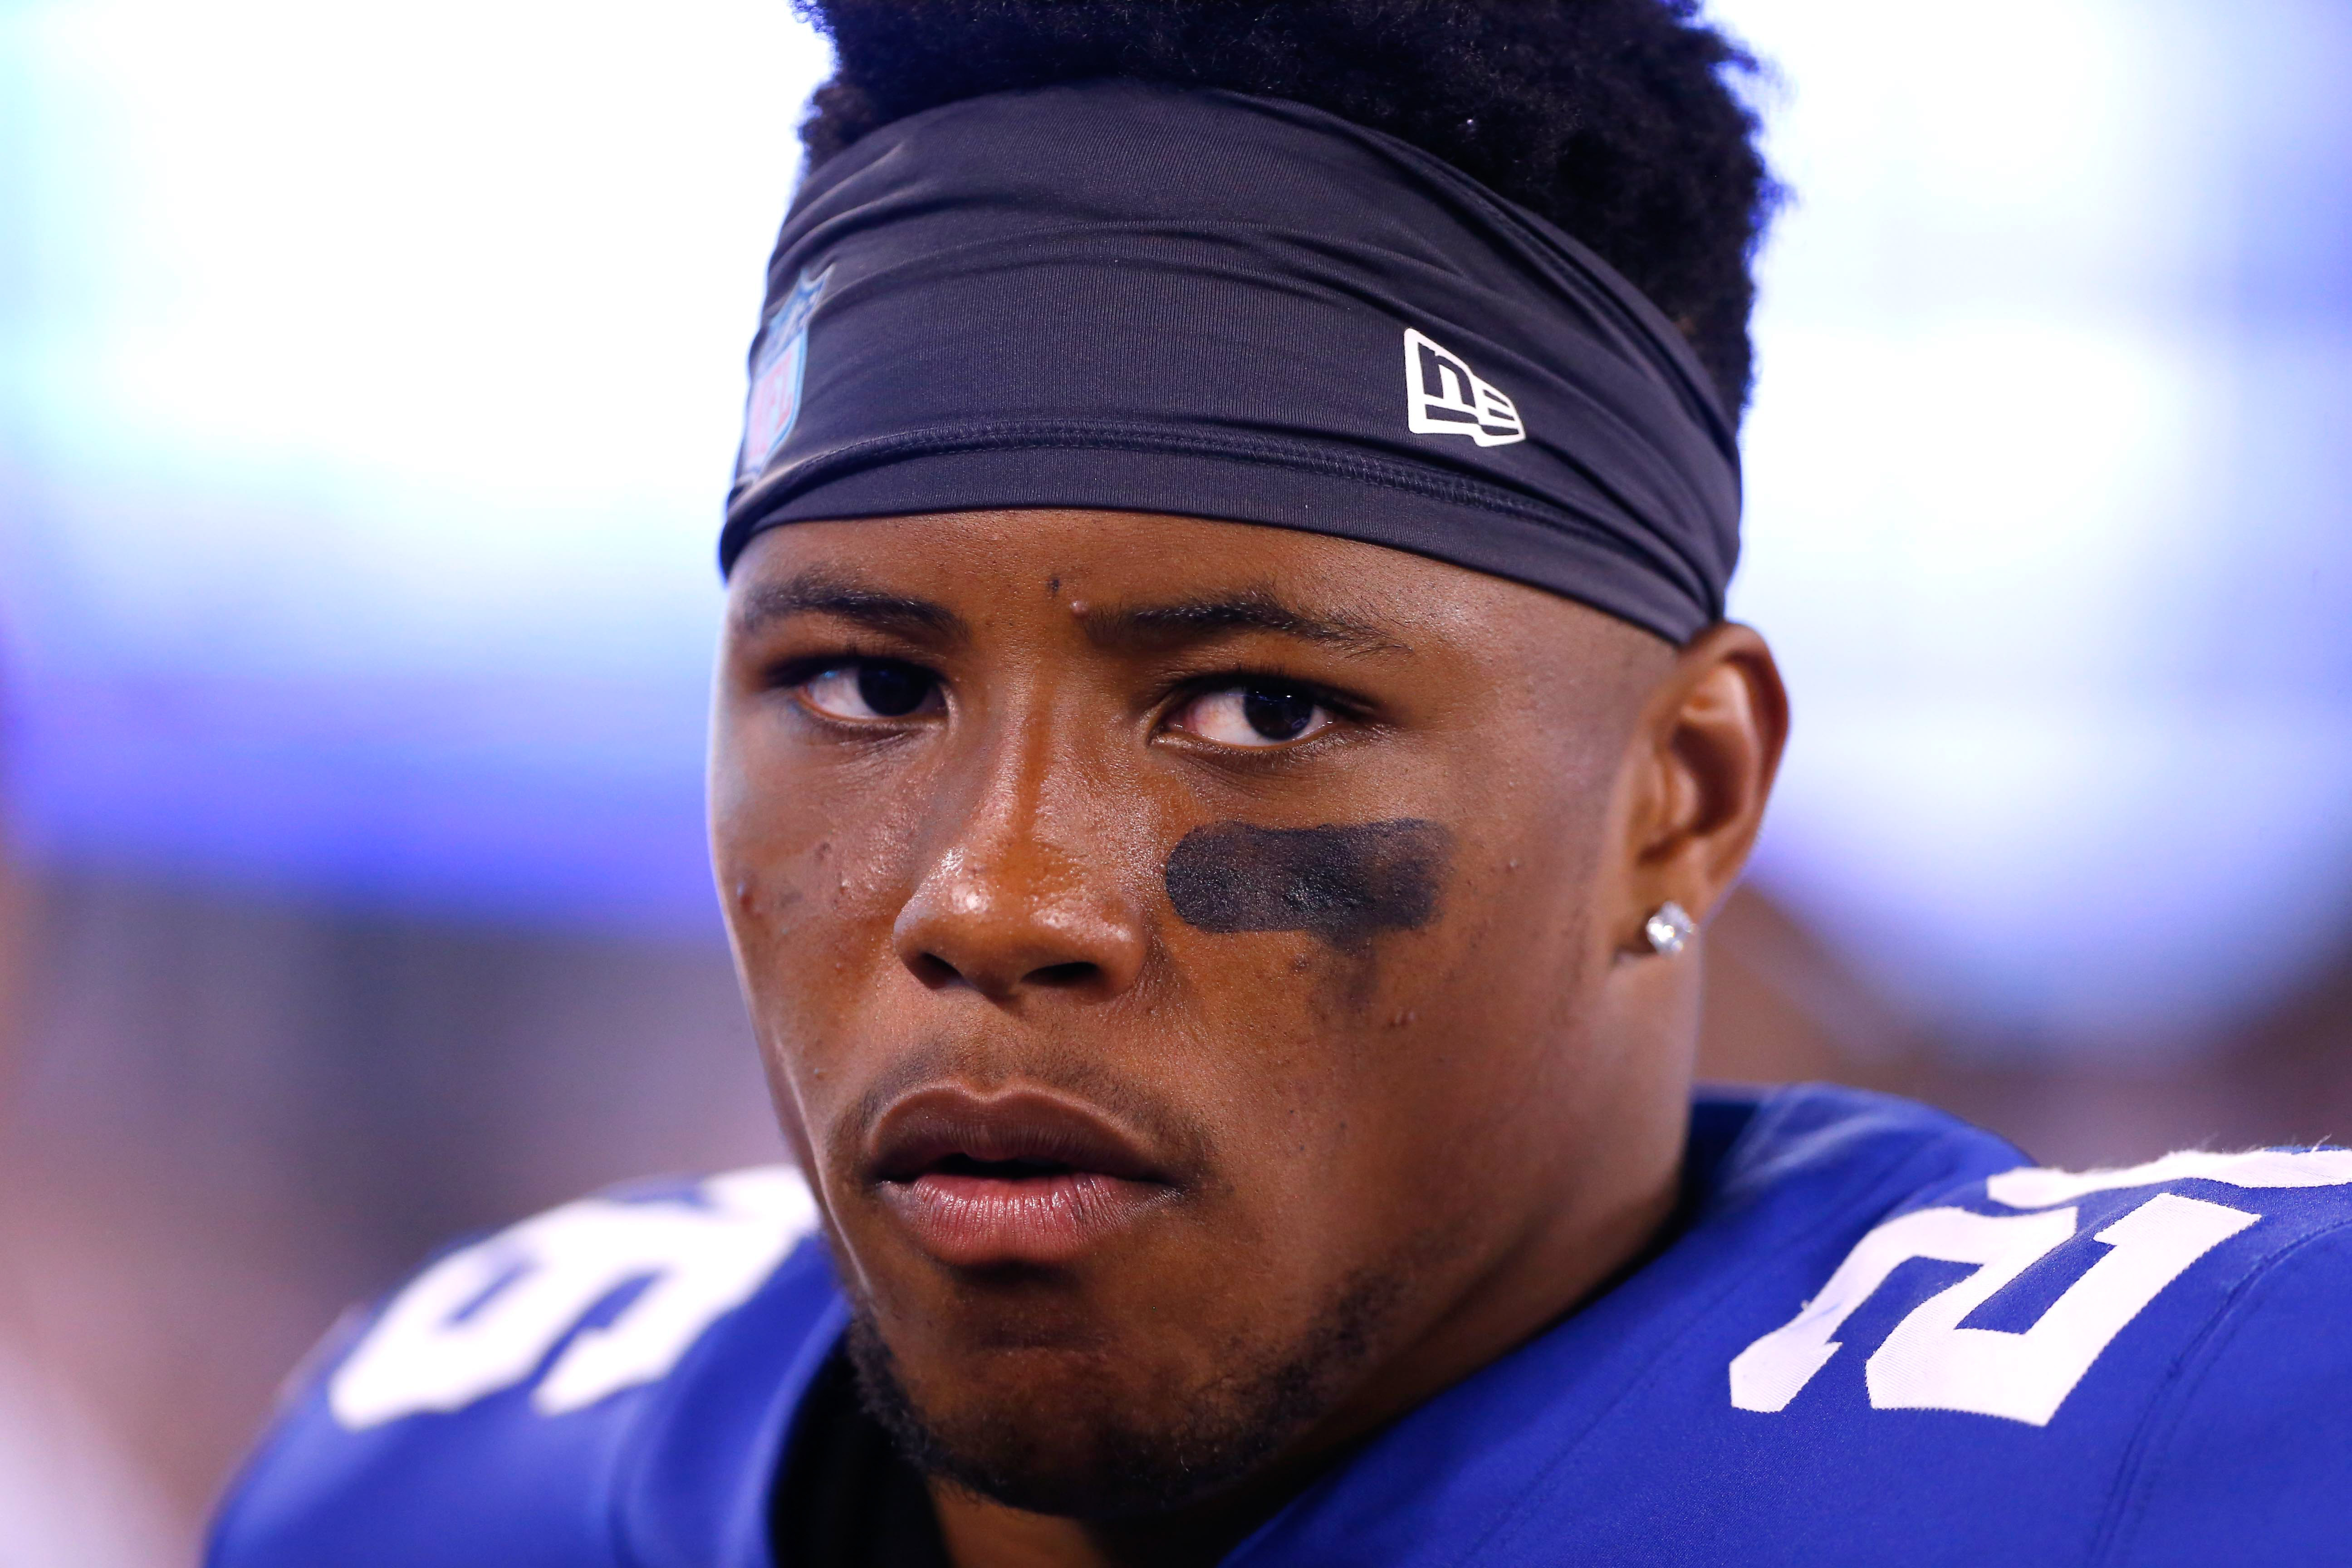 Aug 9, 2018; East Rutherford, NJ, USA; New York Giants running back Saquon Barkley (26) during first half against Cleveland Browns at MetLife Stadium. Mandatory Credit: Noah K. Murray-USA TODAY Sports